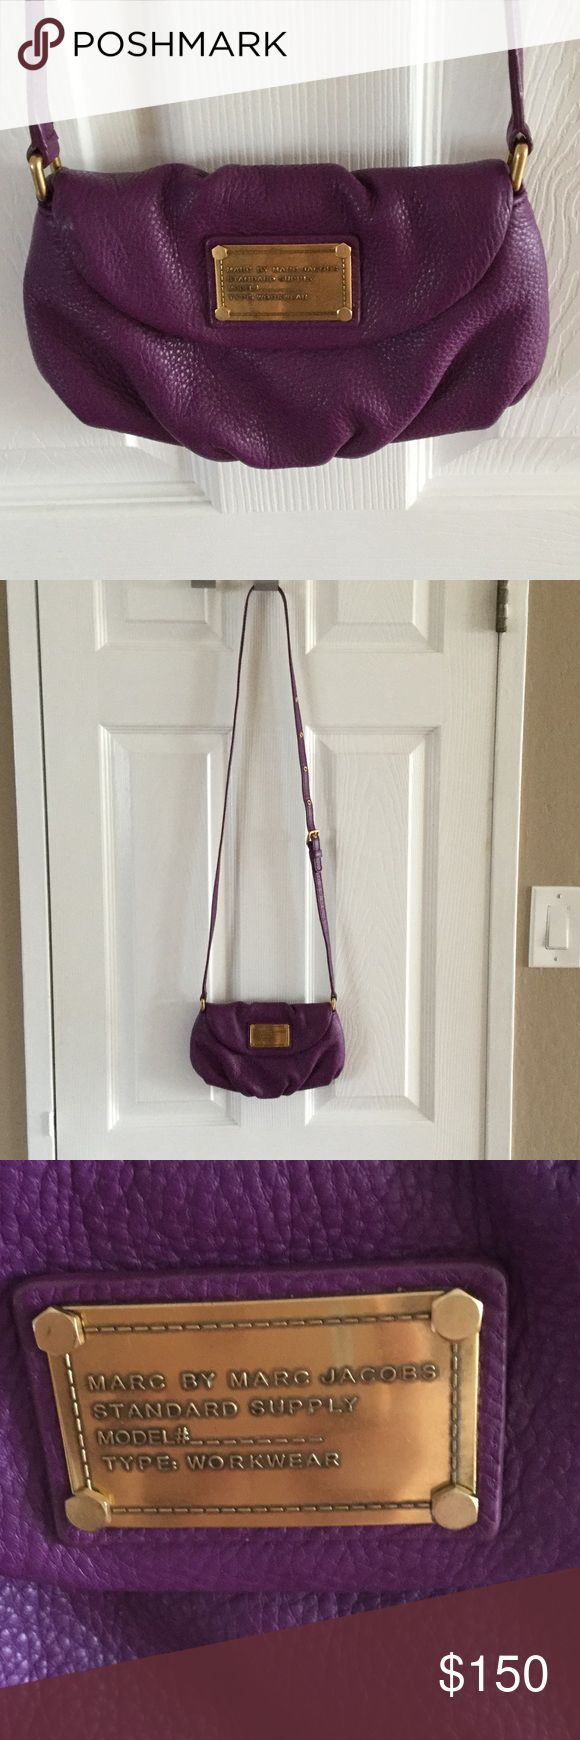 Marc Jacobs classic Karlie in purple This Karlie has the classic MJ black and white interior lining. This Karlie is the Bloomingdales version which means it does not come with the built in credit card slots and it's a leather strap instead on chain.  It is in excellent condition with no stains or wear and tear inside or out. Marc by Marc Jacobs Bags